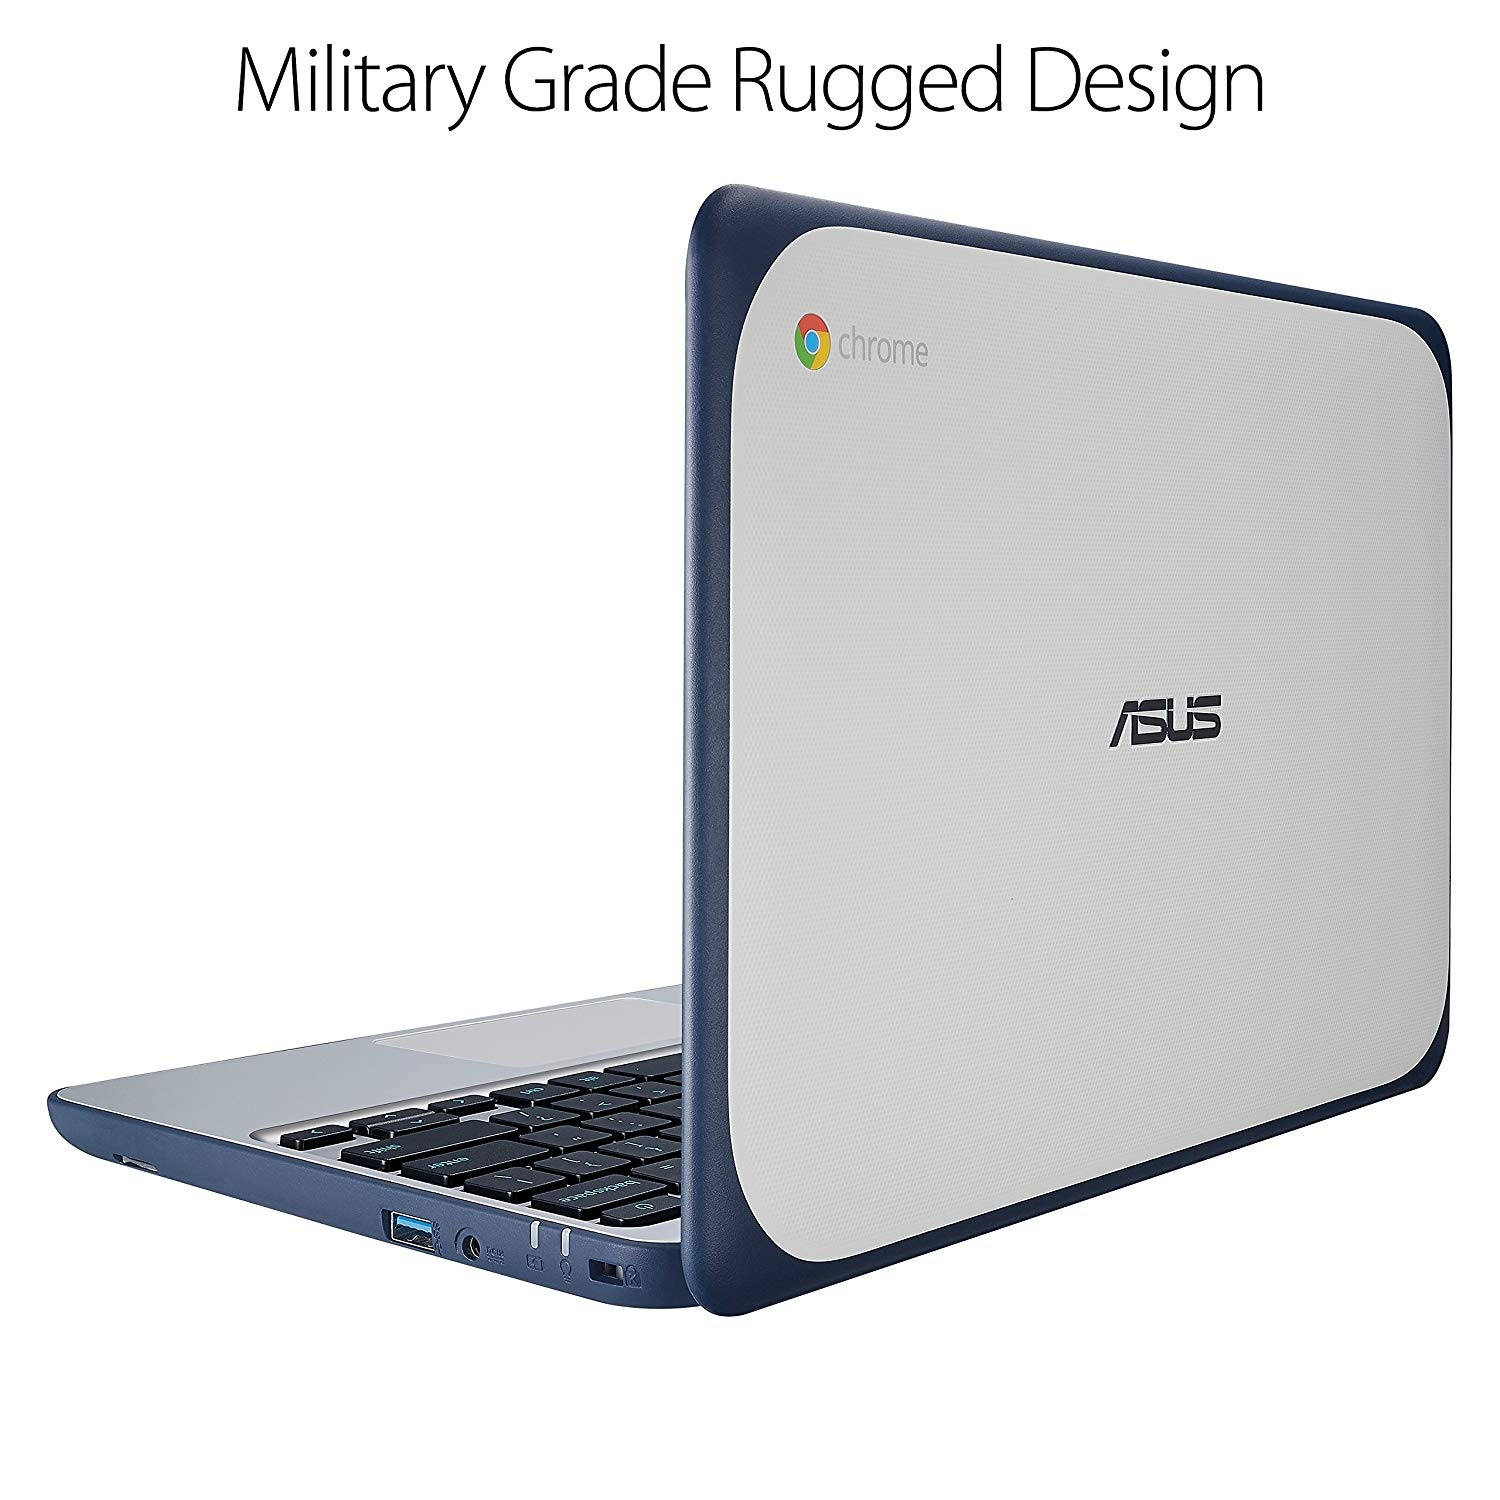 ASUS Chromebook C202SA-YS02 11.6″ Ruggedized and Water Resistant Design with 180 Degree – Best Laptops For College Students Under 500